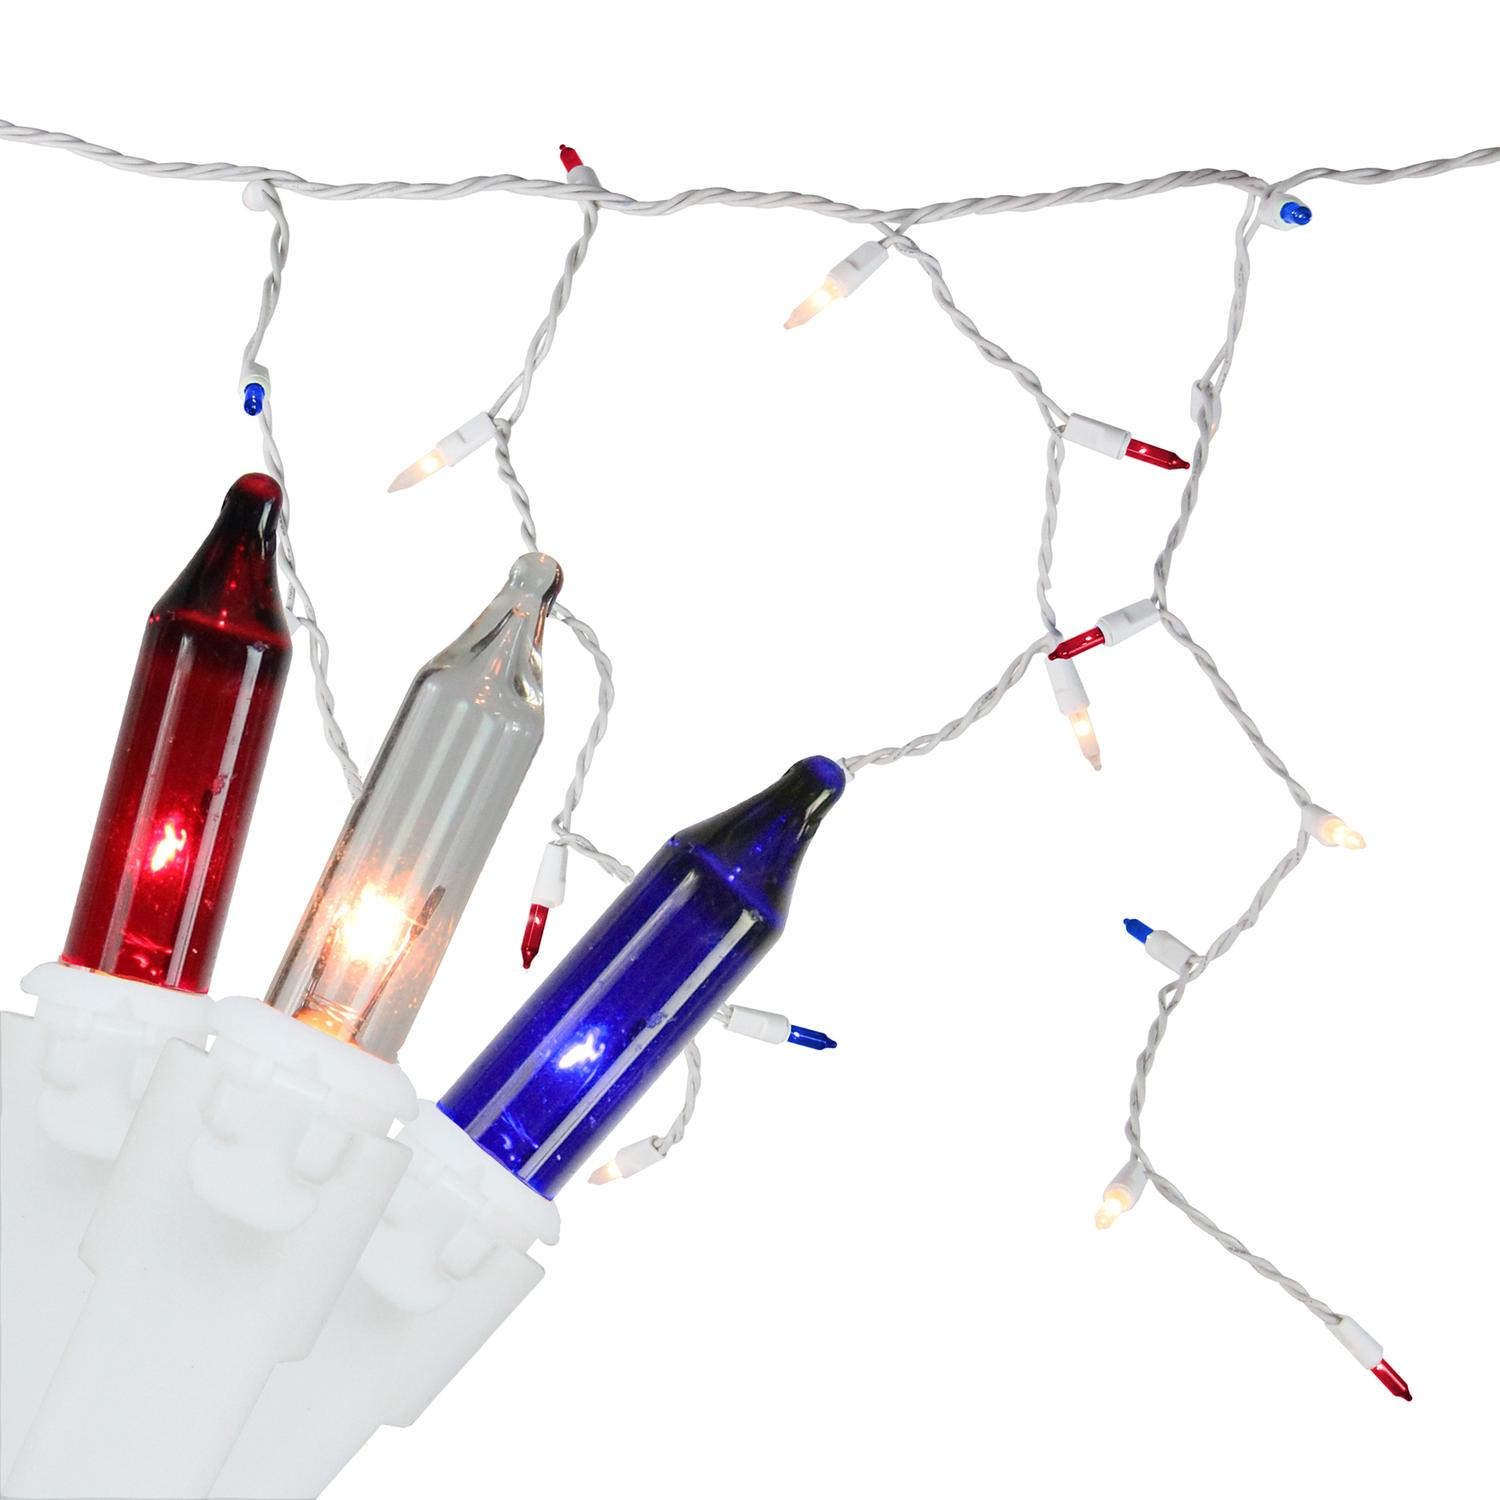 105-Count Red, White, Blue 4th of July Mini Icicle Light Set, 6.5ft White Wire